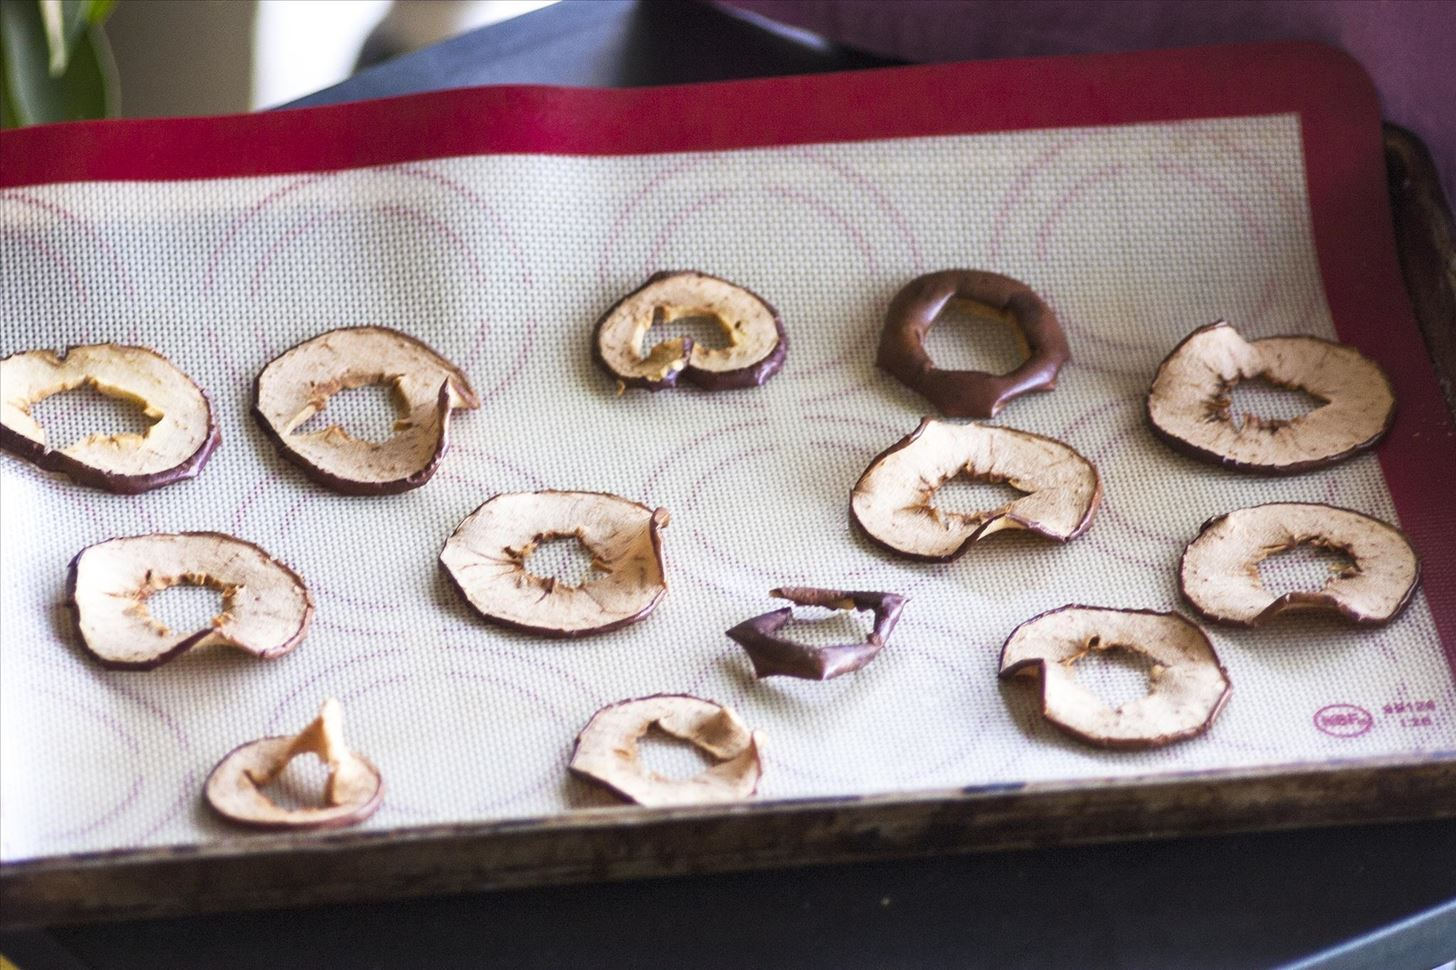 How to Dehydrate Food Without a Dehydrator